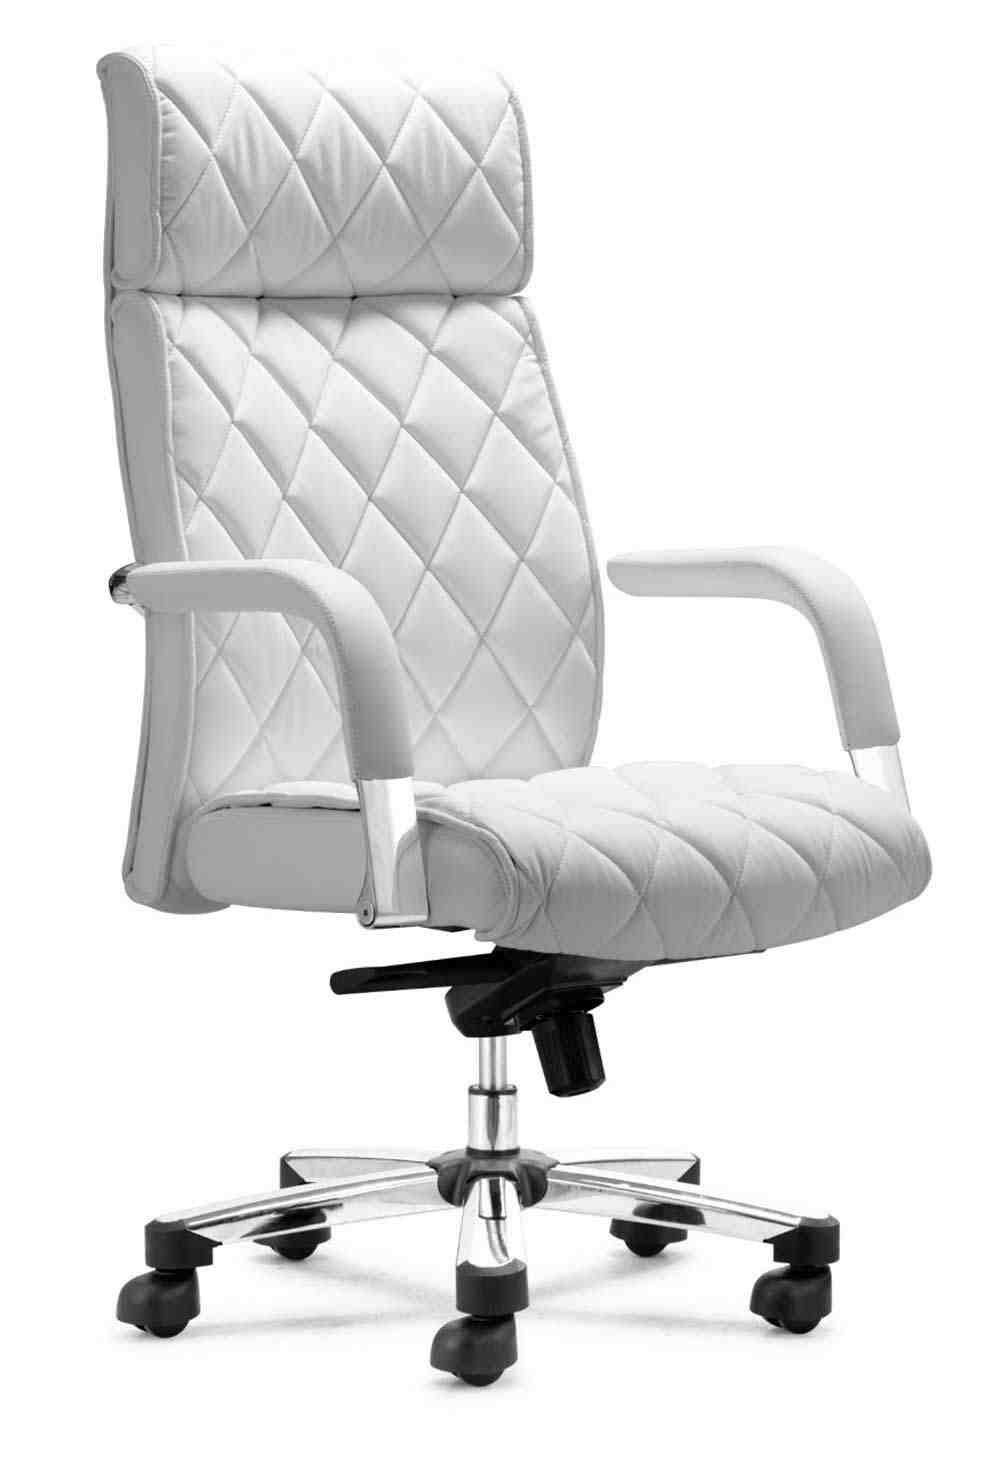 Modern White Leather Office Chair | Leather Office Chair in ...